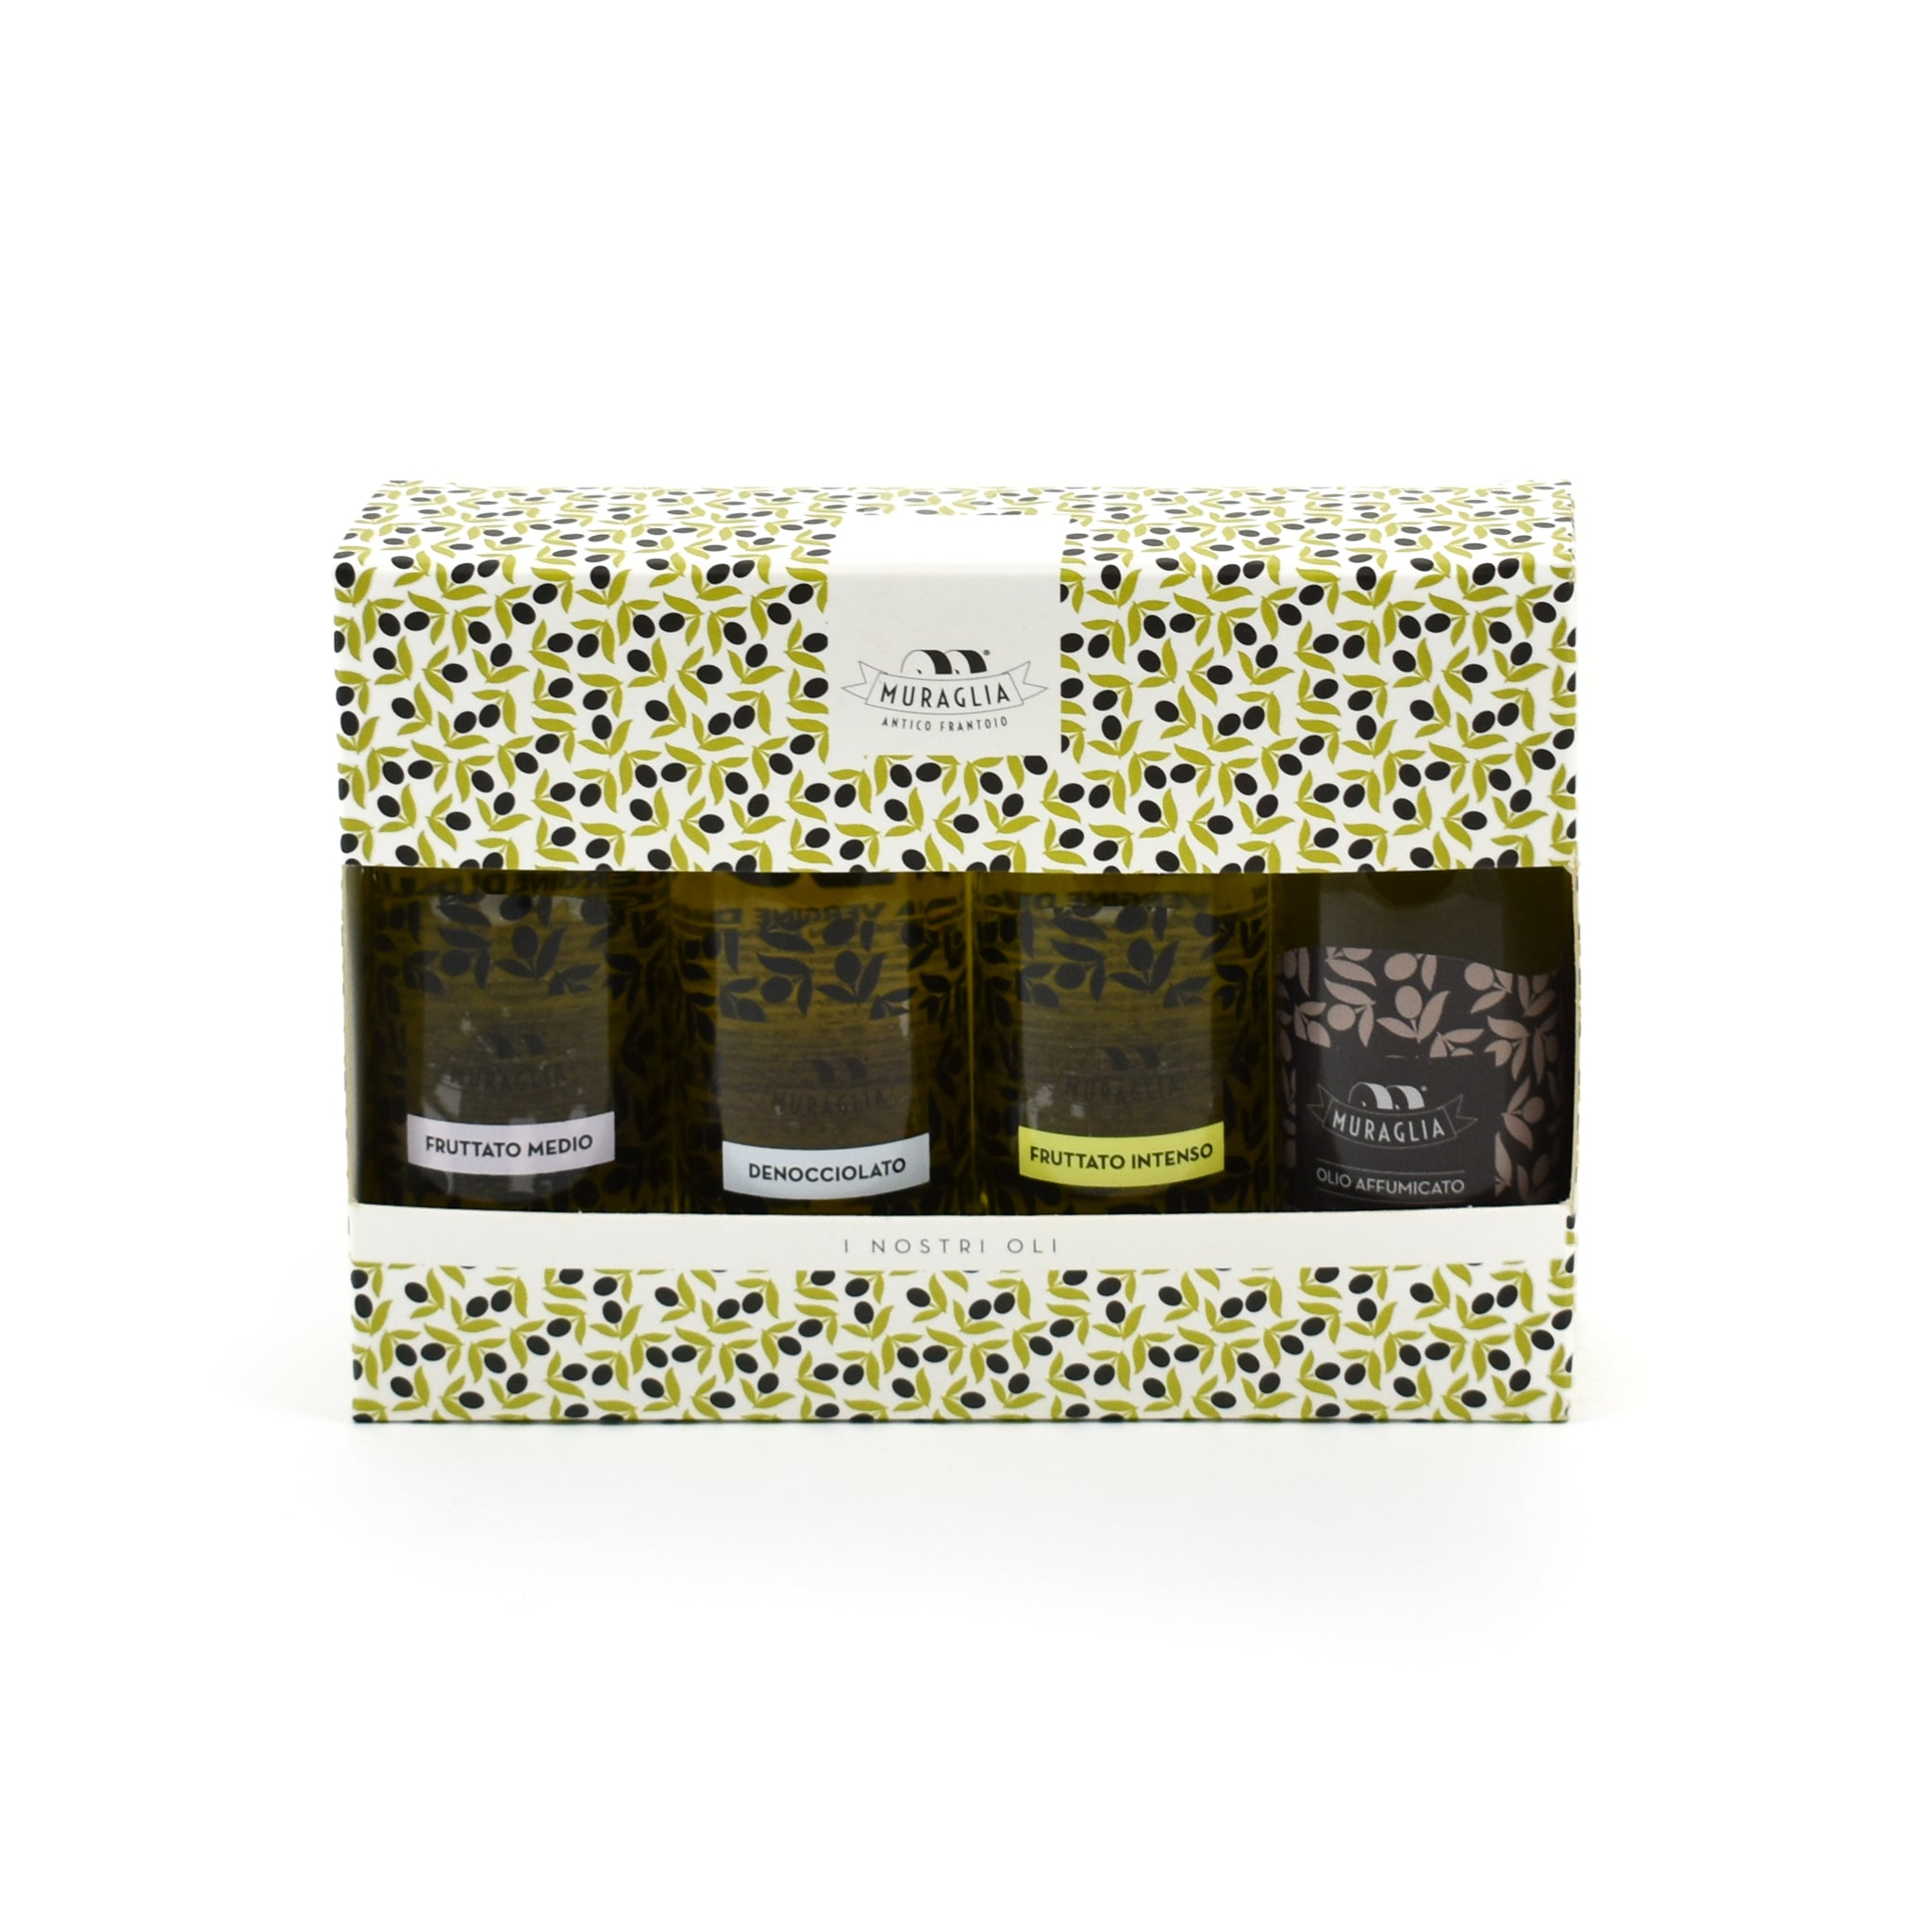 Frantoio Muraglia Extra Virgin Olive Oil Selection